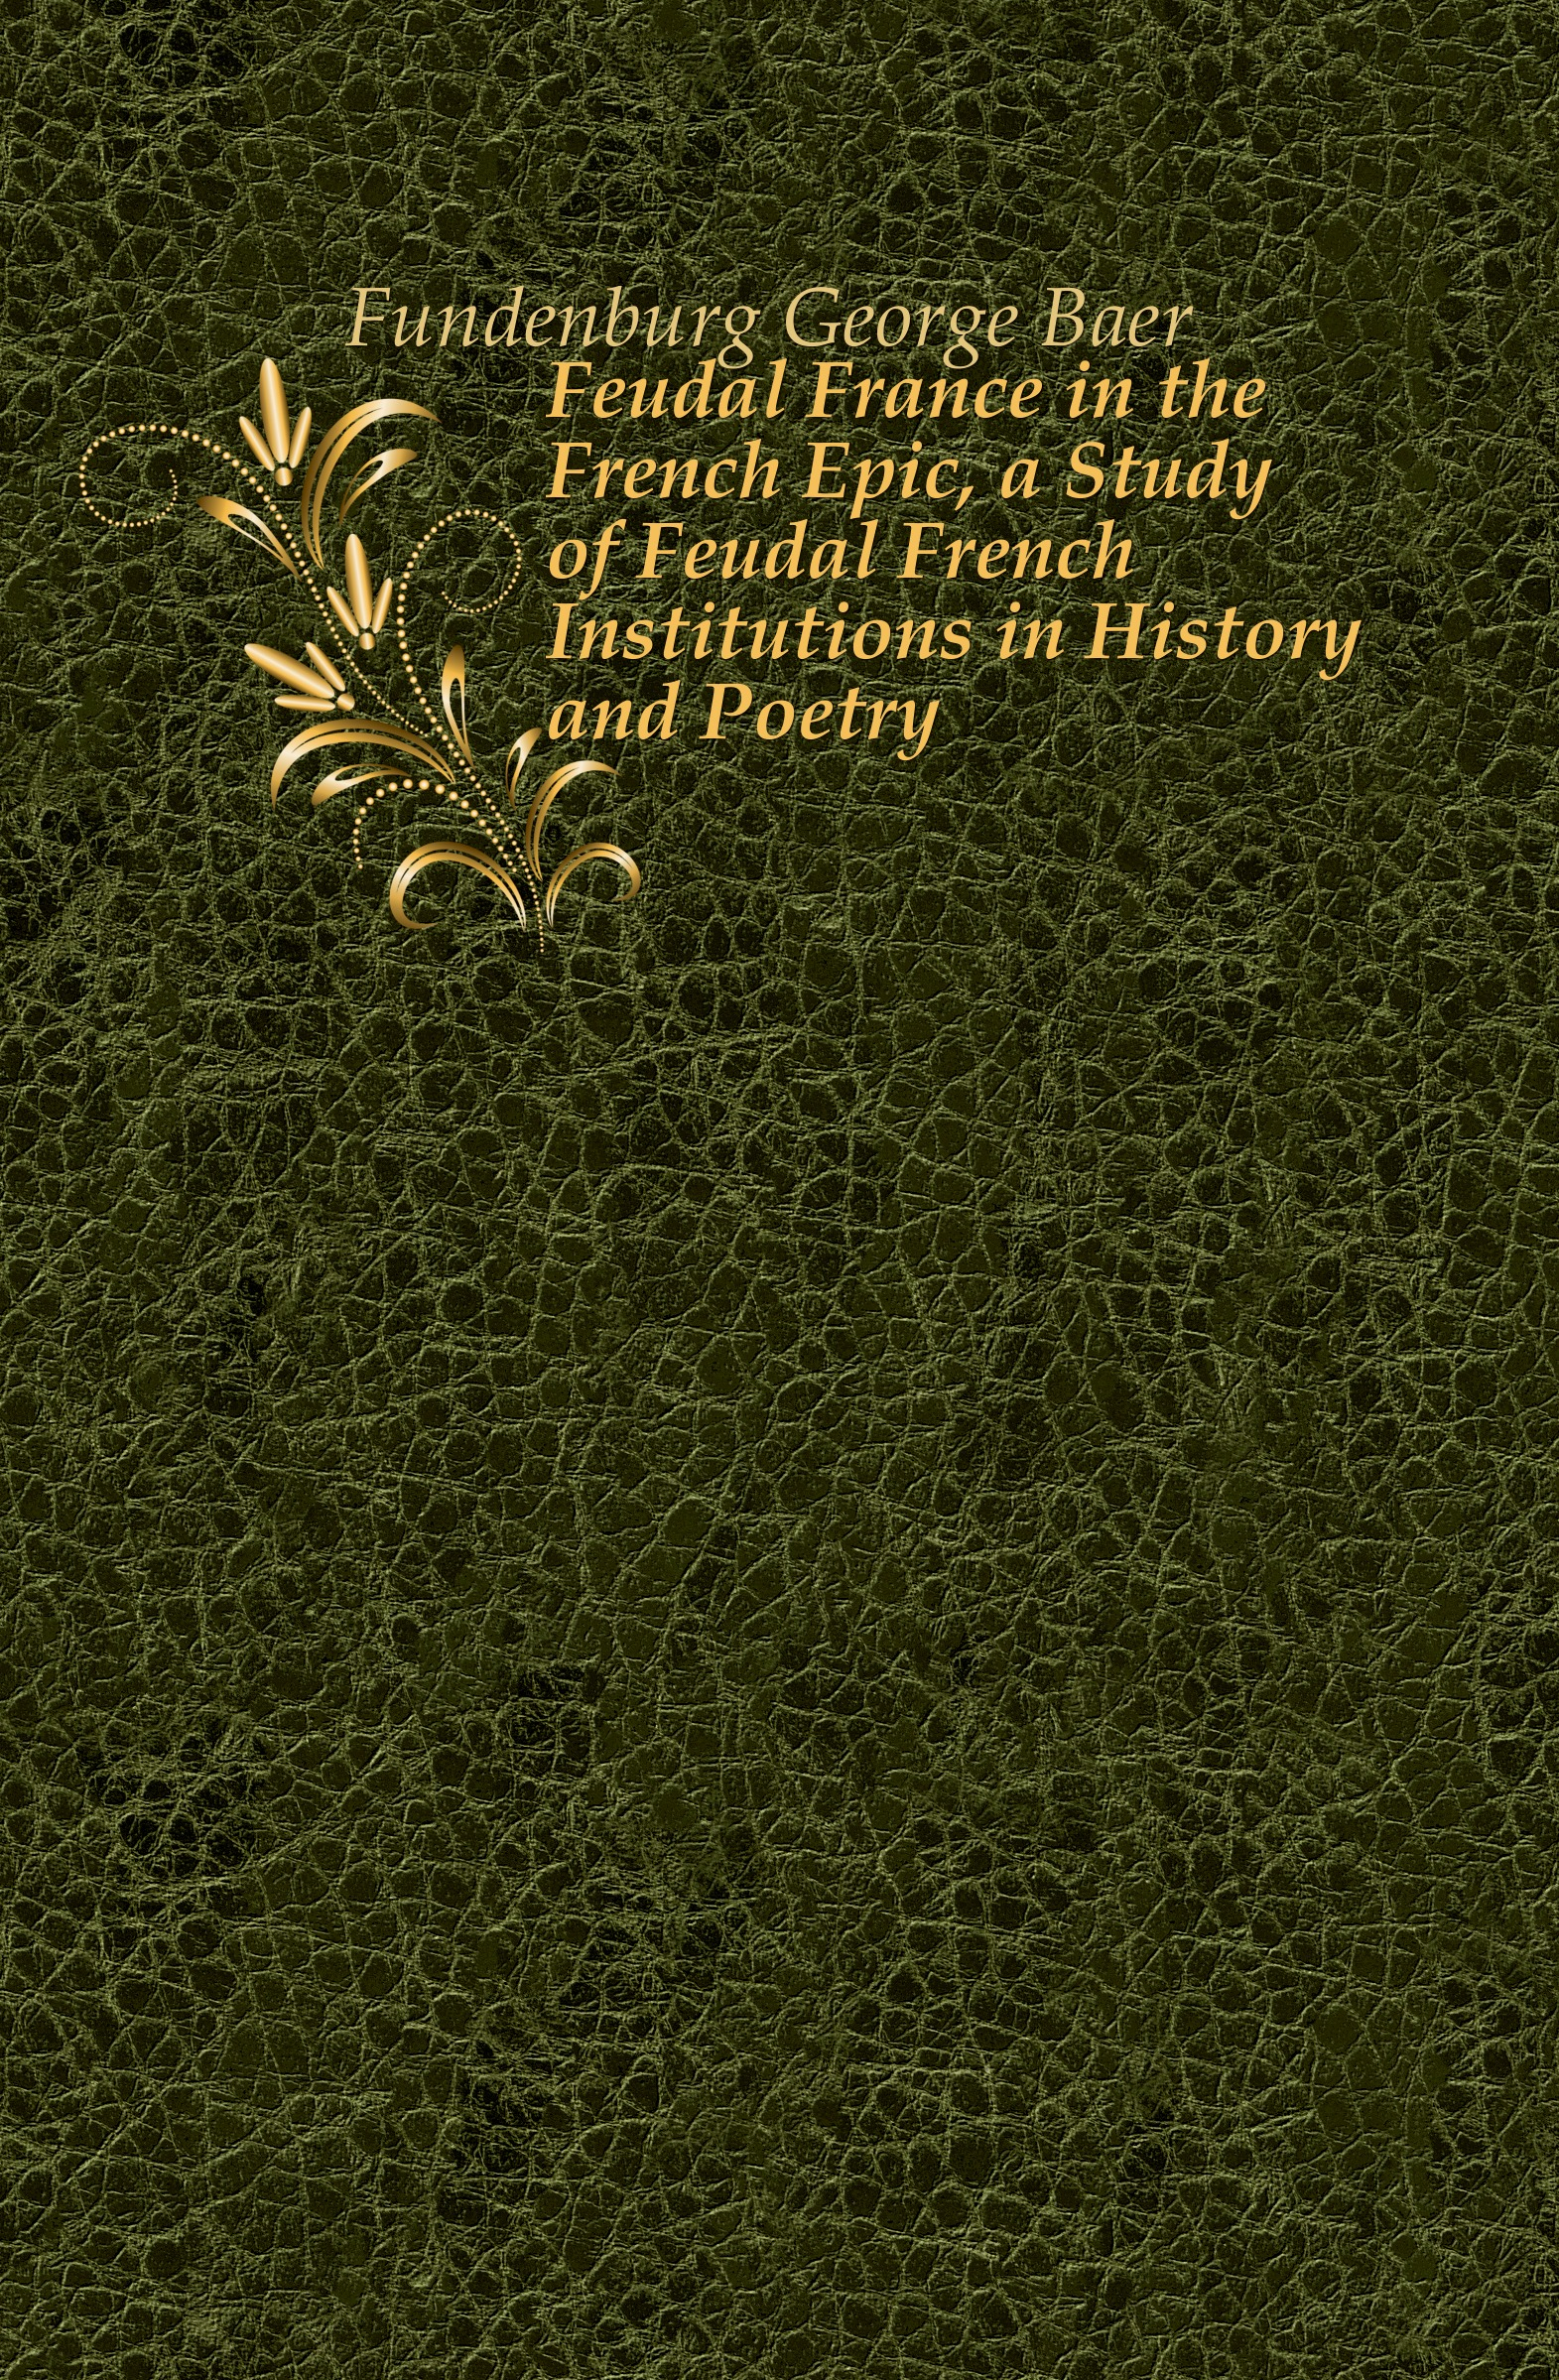 Fundenburg George Baer Feudal France in the French Epic, a Study of Feudal French Institutions in History and Poetry french poetry